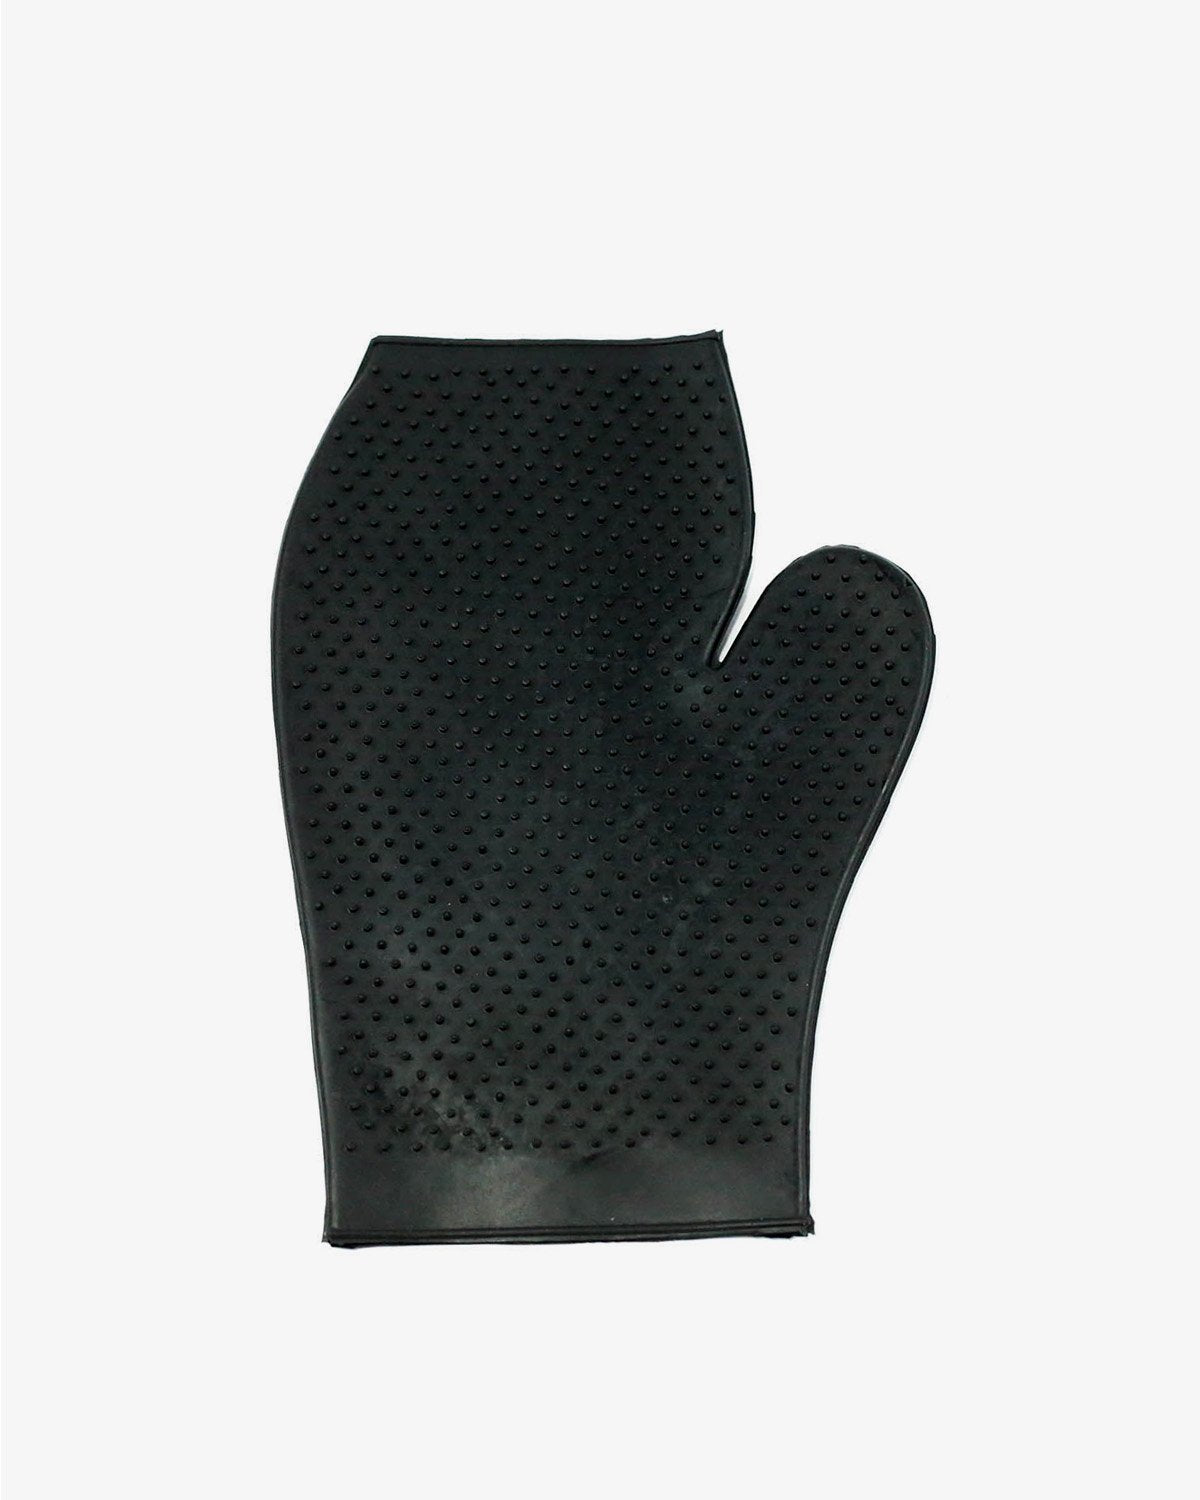 Waldhausen_RubberGroomingGloves_AlSaqb